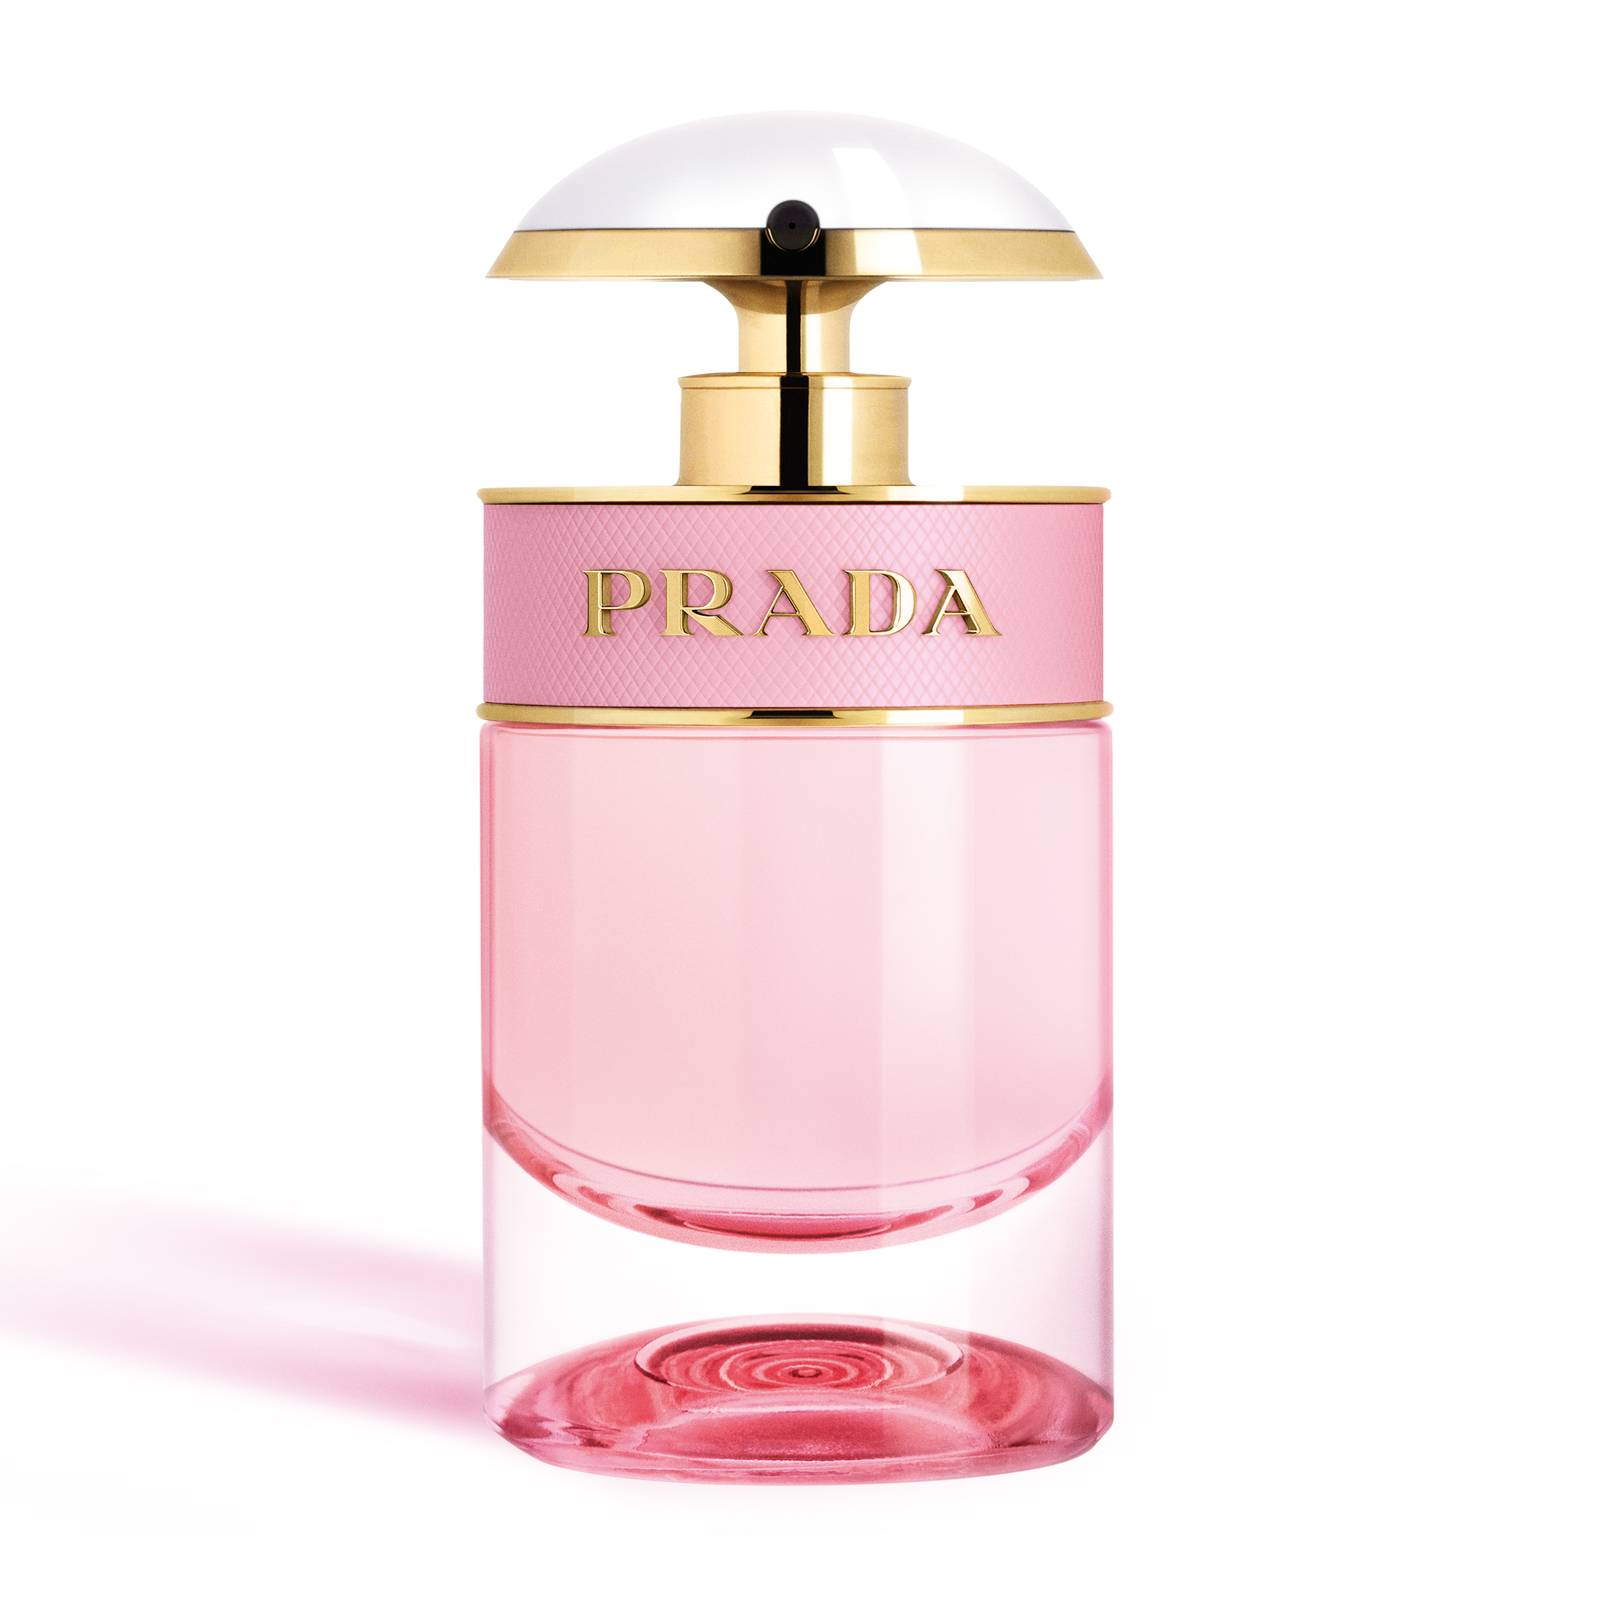 prada florale eau de toilette 30ml feelunique